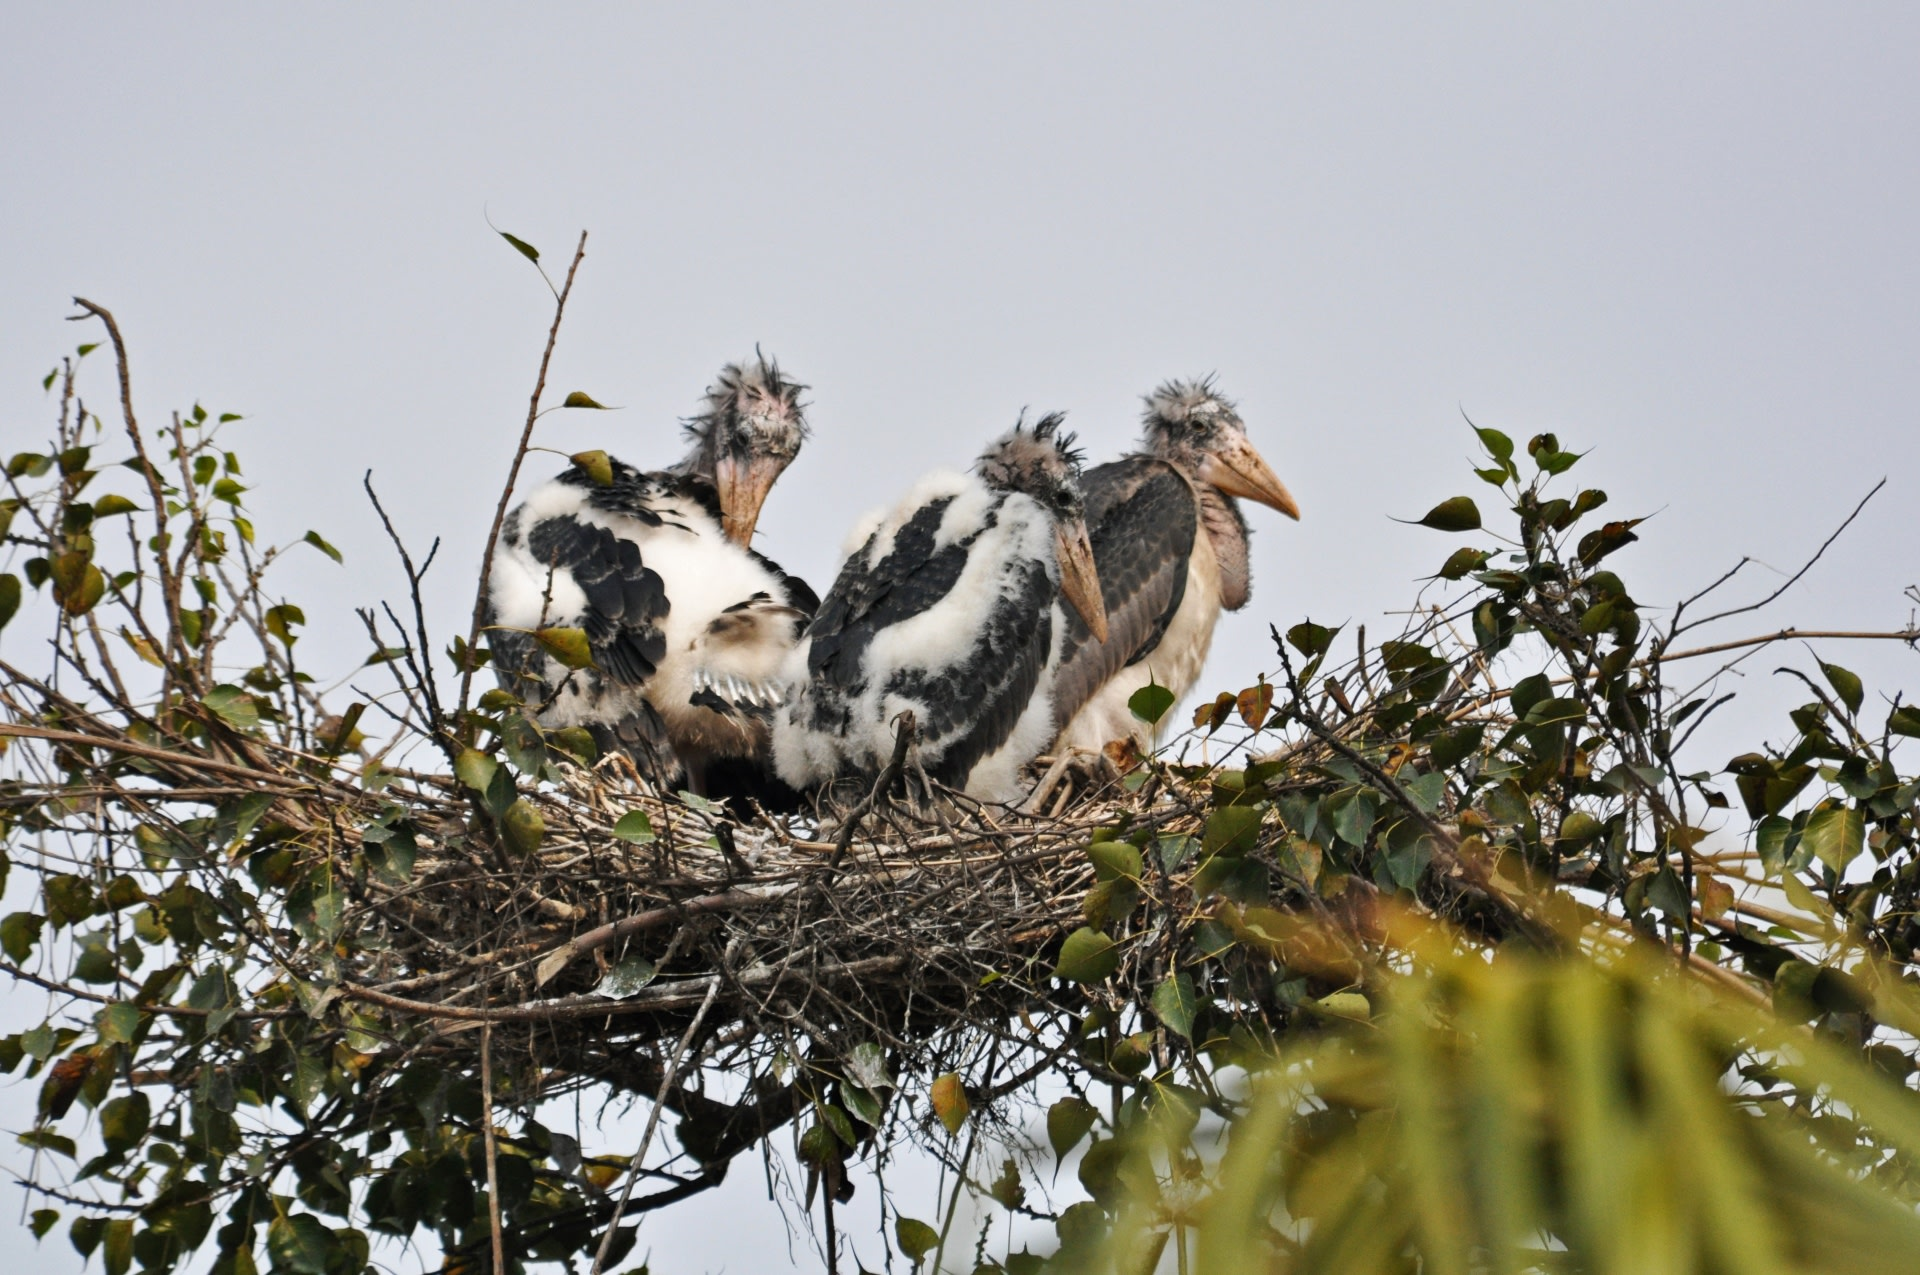 Greater adjutants are colonial nesters, which means that several pairs will build nests on a single tree. They nest mostly on large trees that have sparse foliage, which allows them to take off and land with ease. Photo courtesy: Arvind Mishra